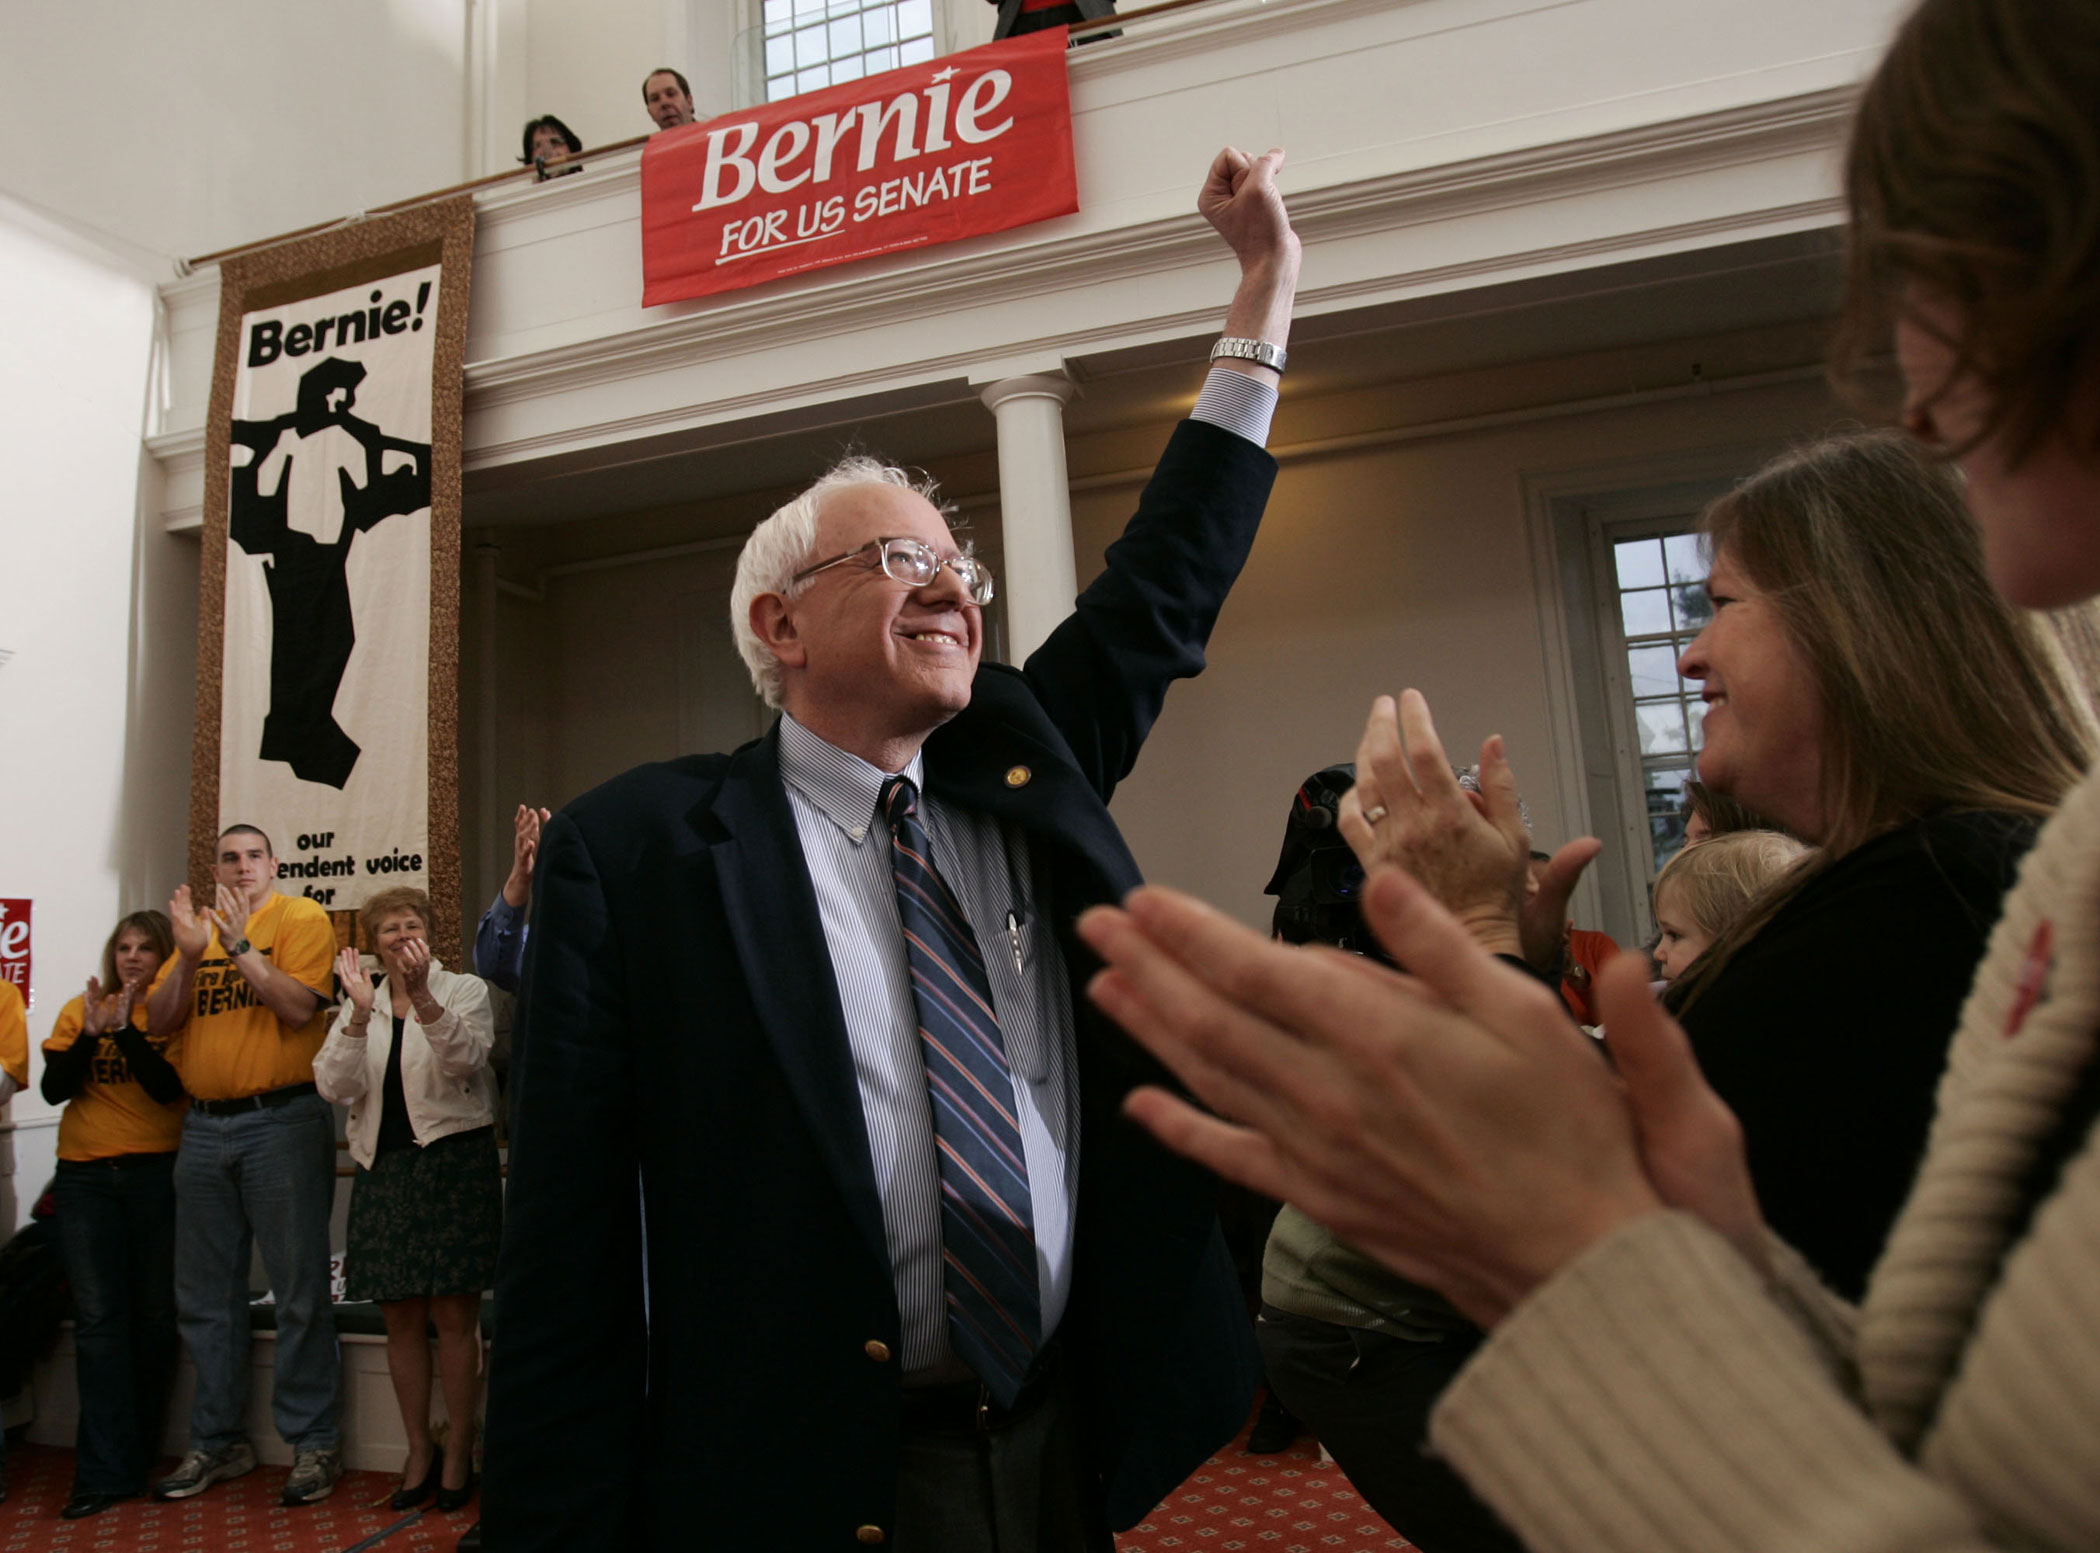 Bernie Sanders officially announces his candidacy for U.S. Senate on May 19, 2006, at the Unitarian Church in Burlington, Vt.